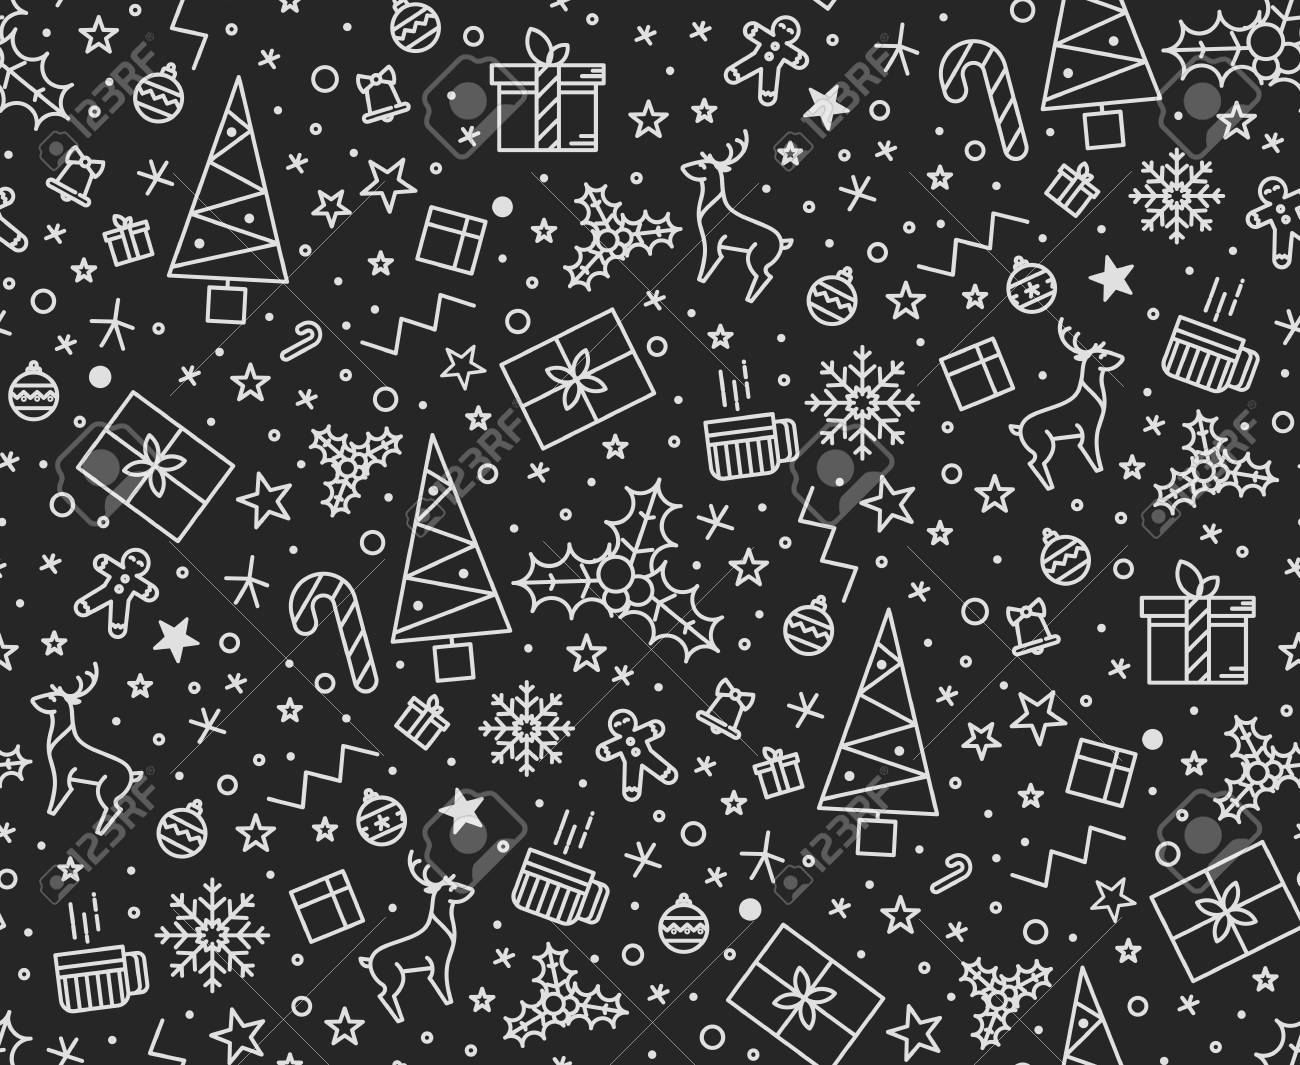 Black Christmas Seamless Pattern For Gift Wrapping For Cards ...